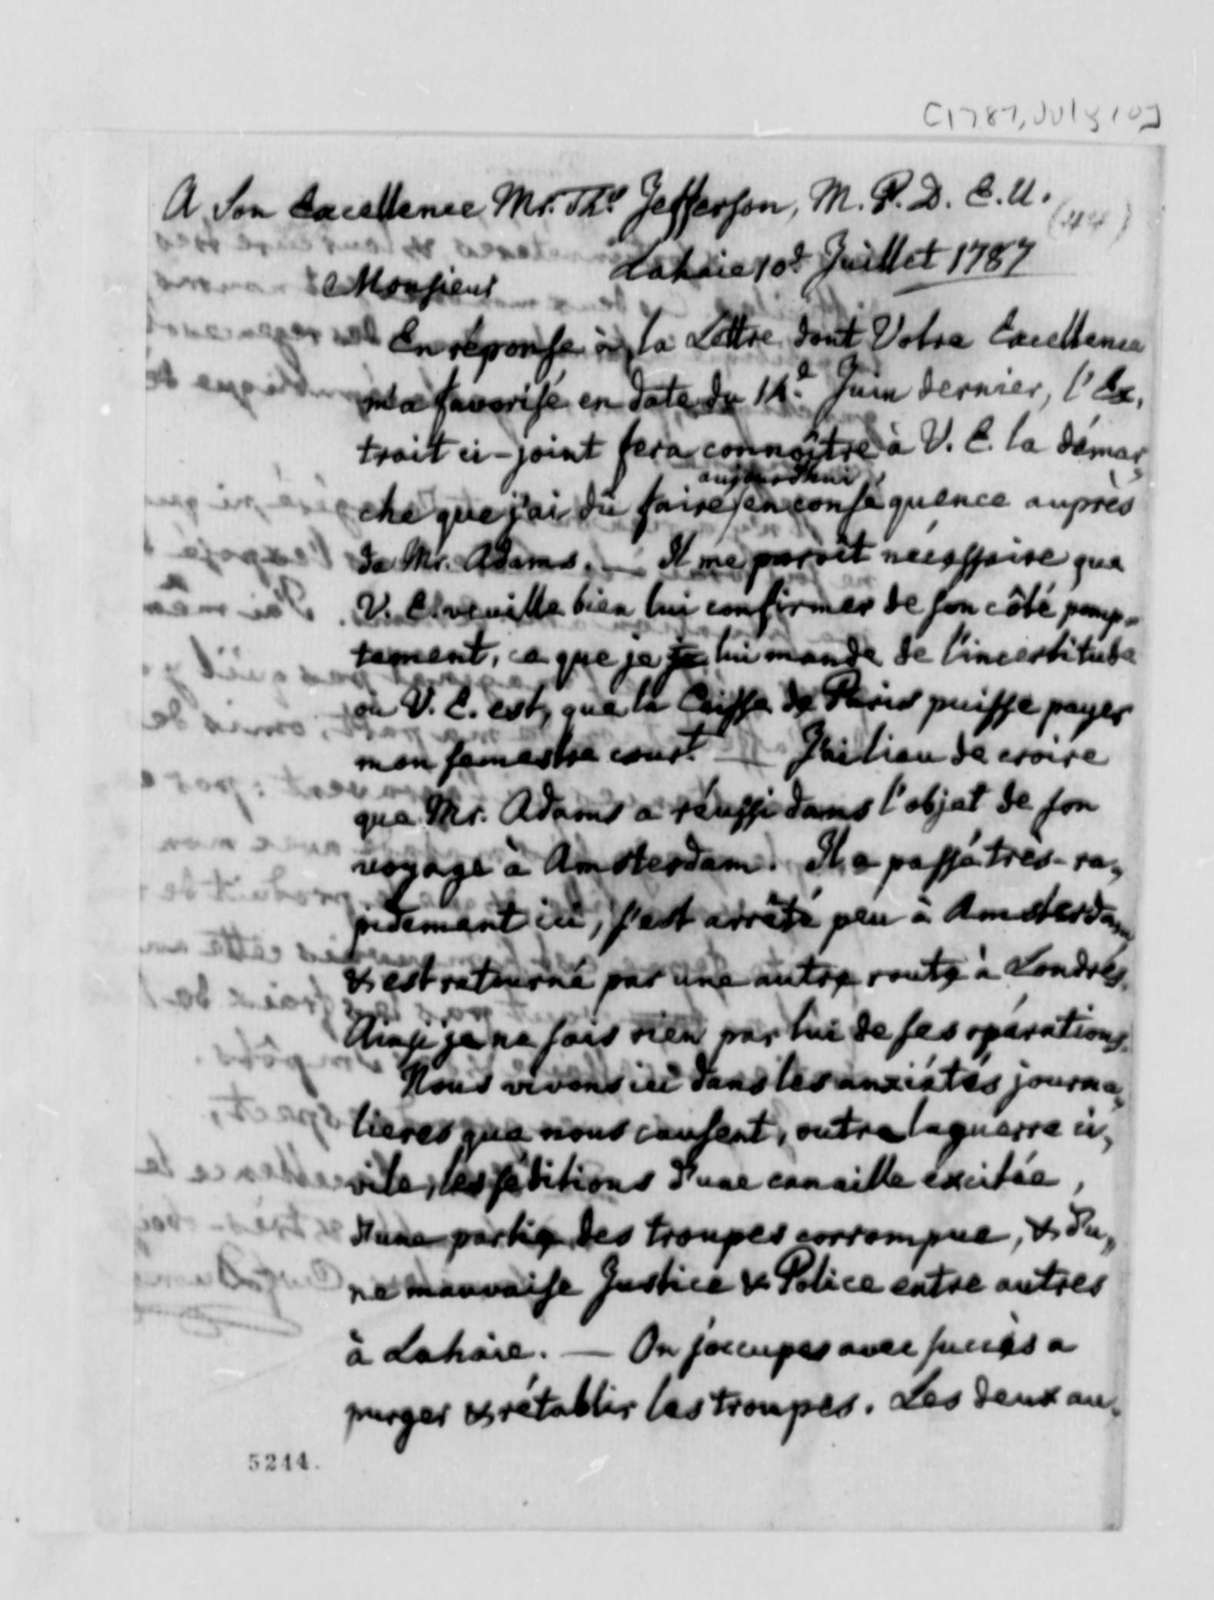 Charles William Frederic Dumas to Thomas Jefferson, July 10, 1787, in French